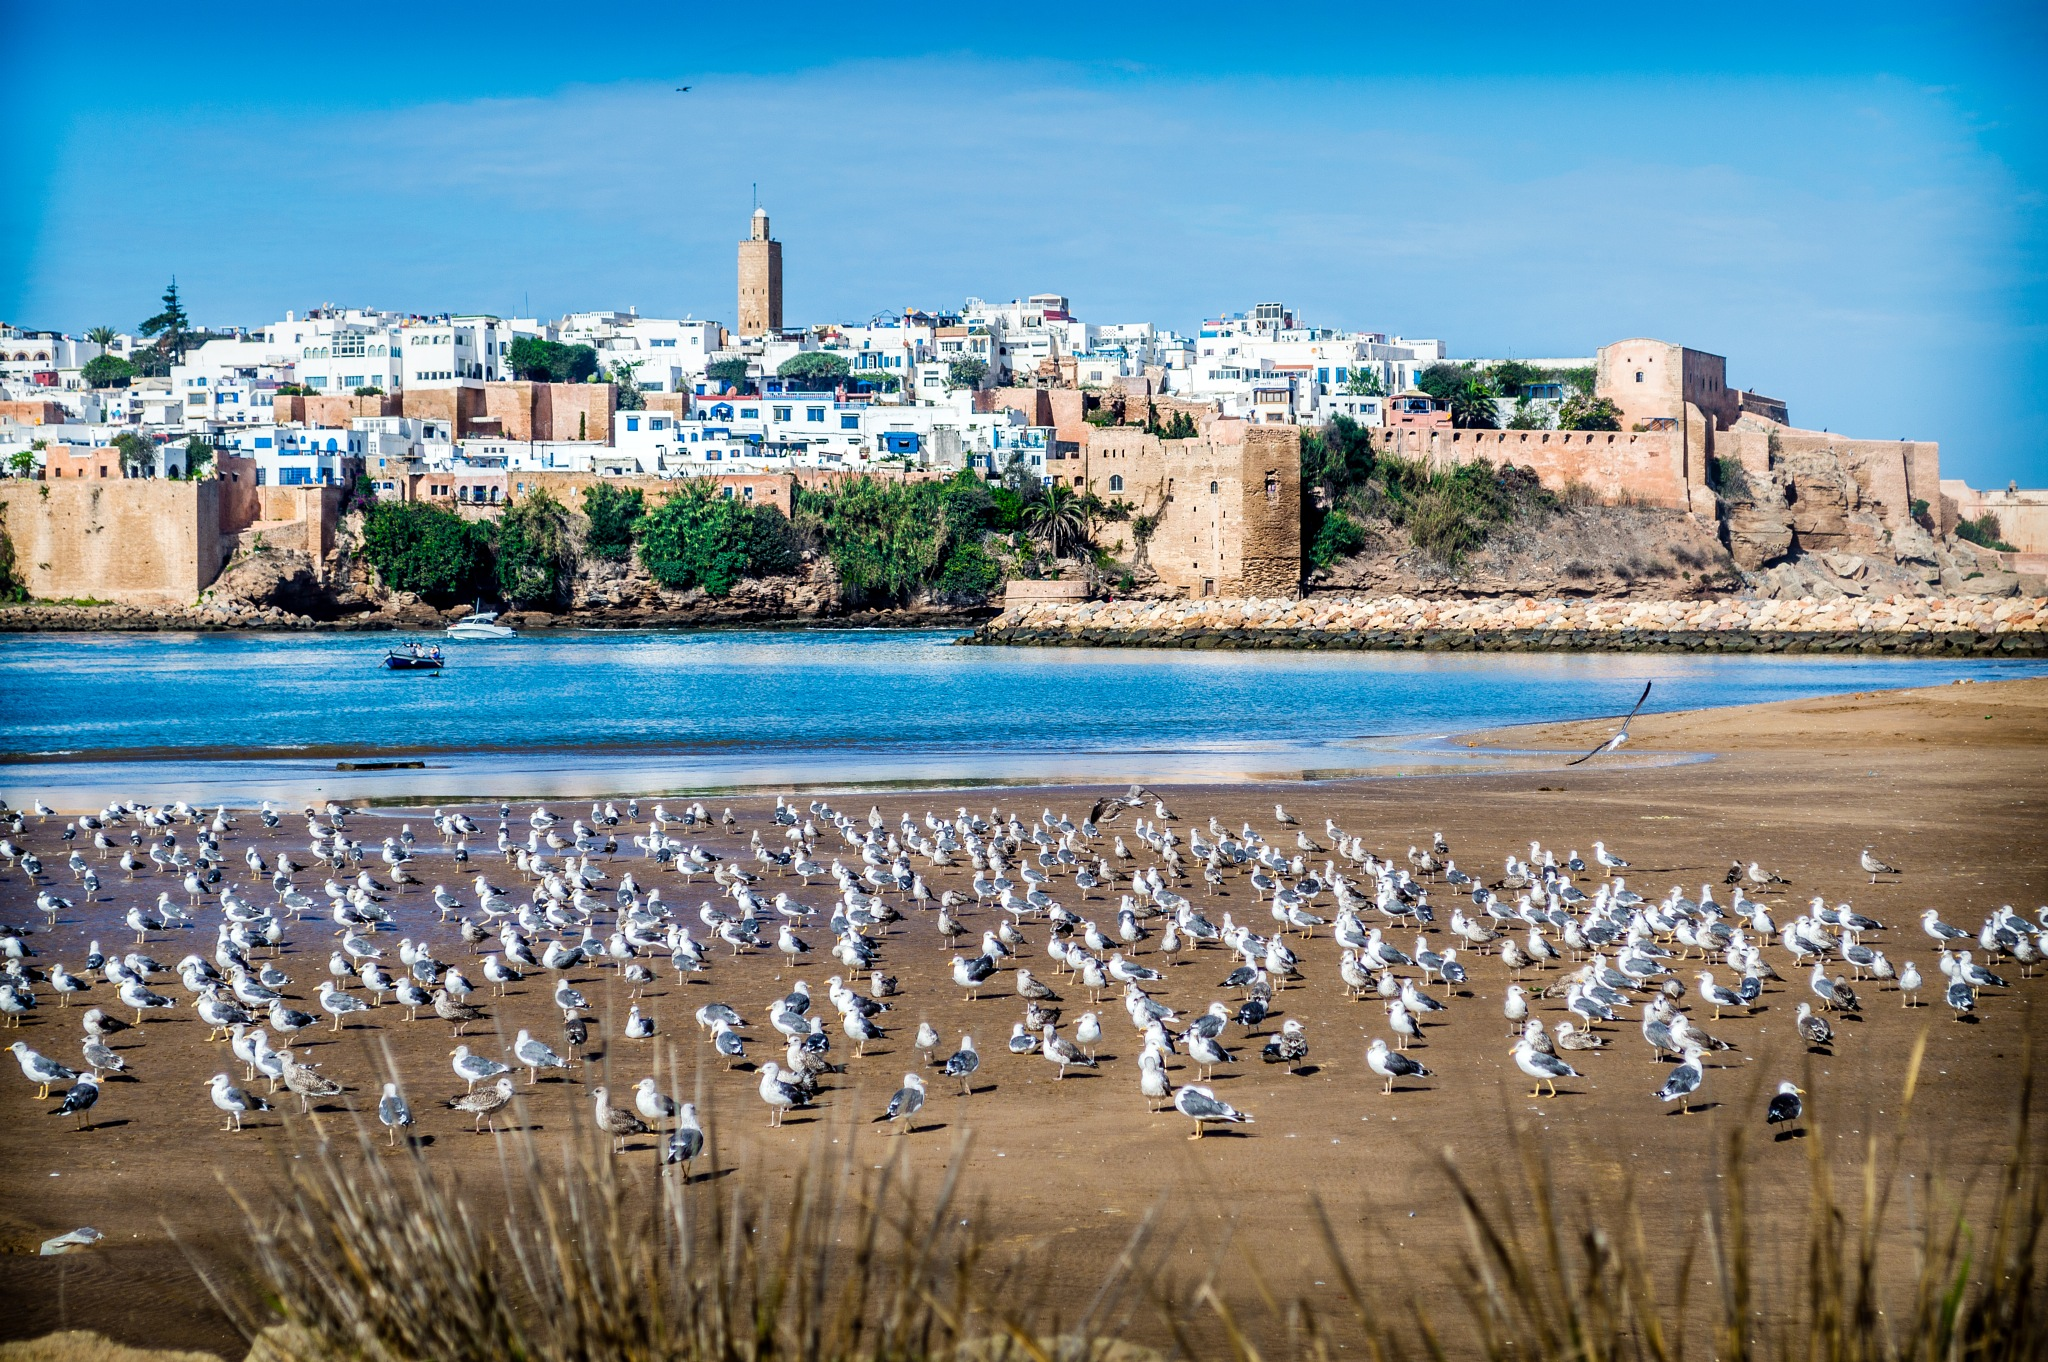 Seagull's club by Badr Morchid